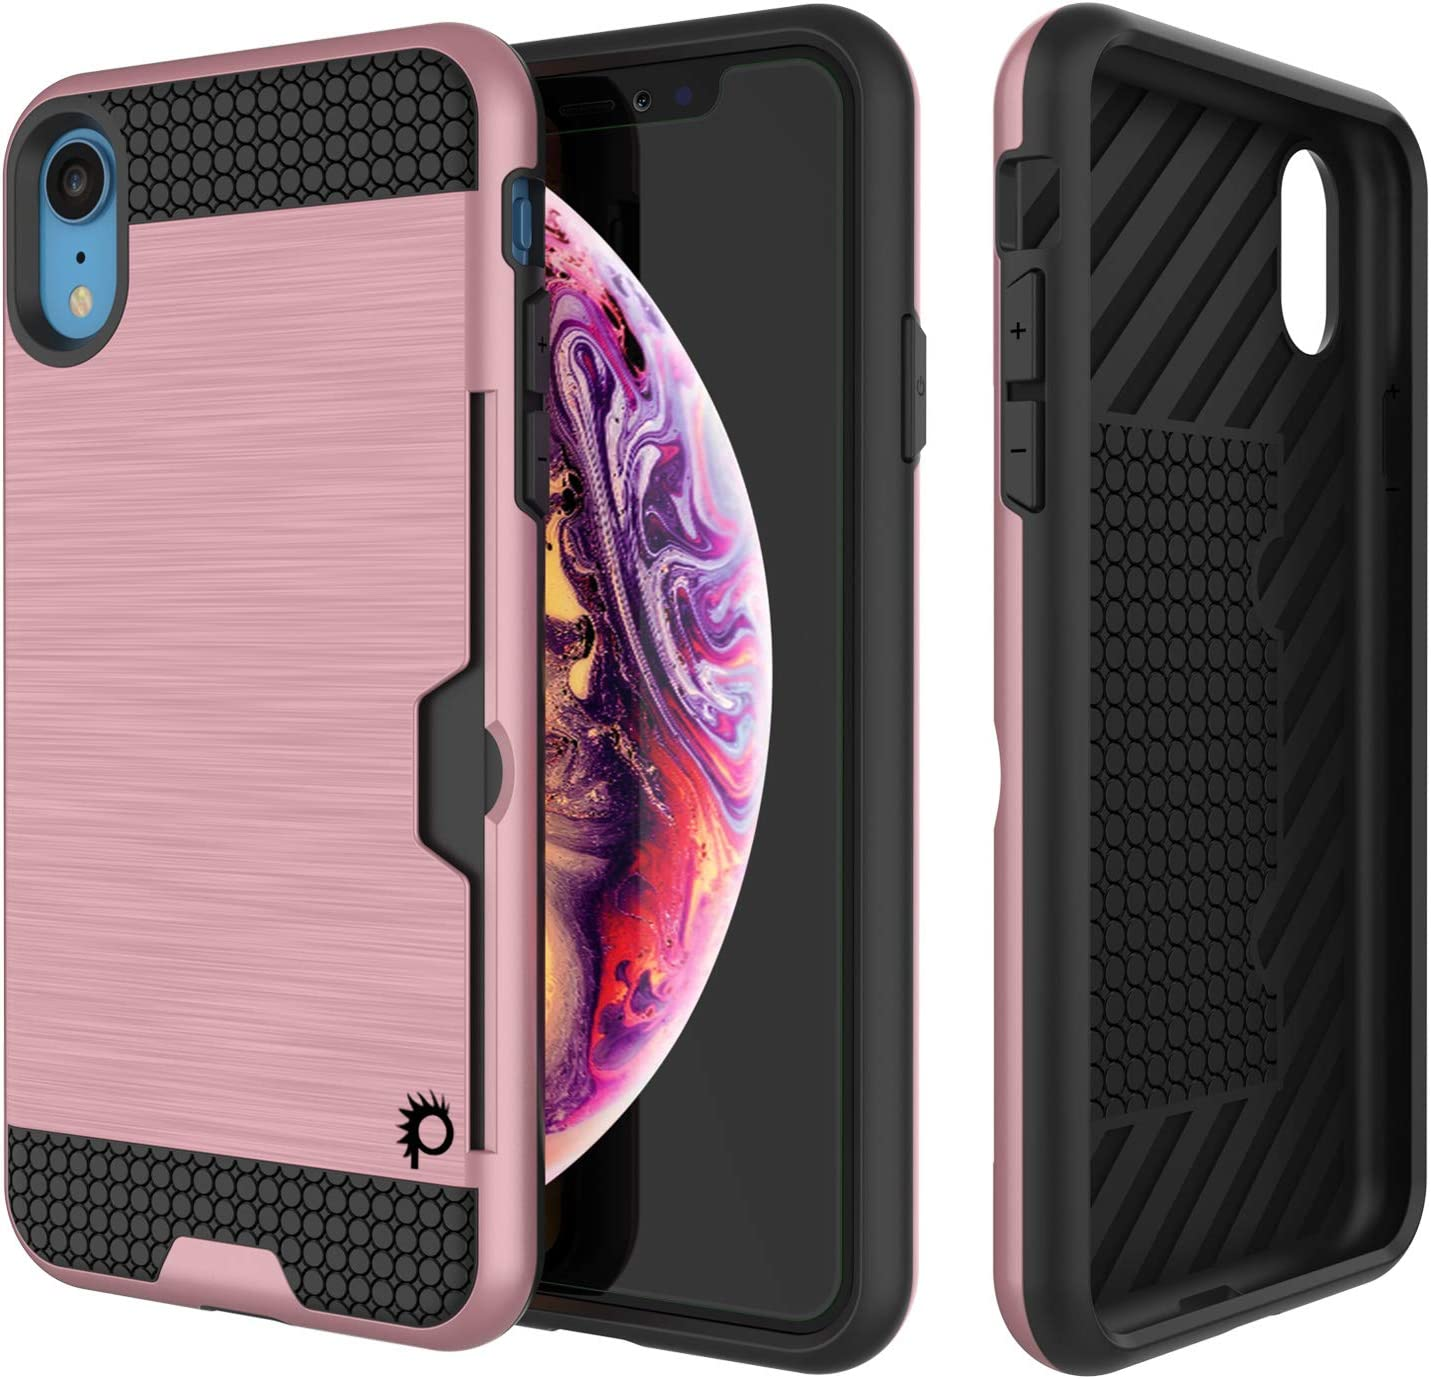 iPhone XR Case, PUNKcase [Slot Series] [Slim Fit] Universal Armor Cover w/Integrated Anti-Shock System, Credit Card Slot & Tempered Glass Screen Protector for Apple iPhone XR [Rose Gold]